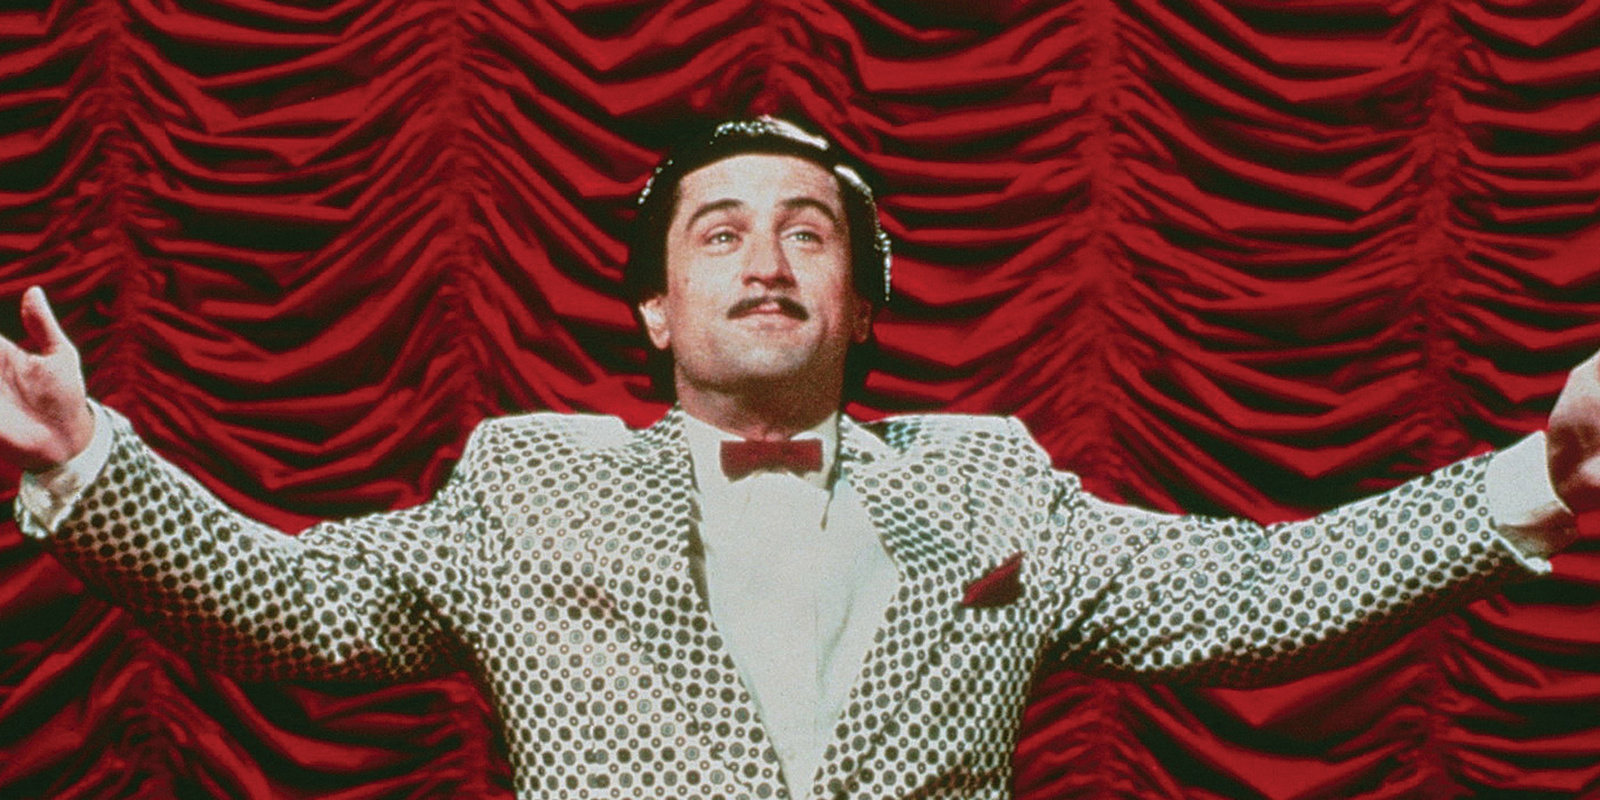 The King of Comedy (Martin Scorsese, 1983)